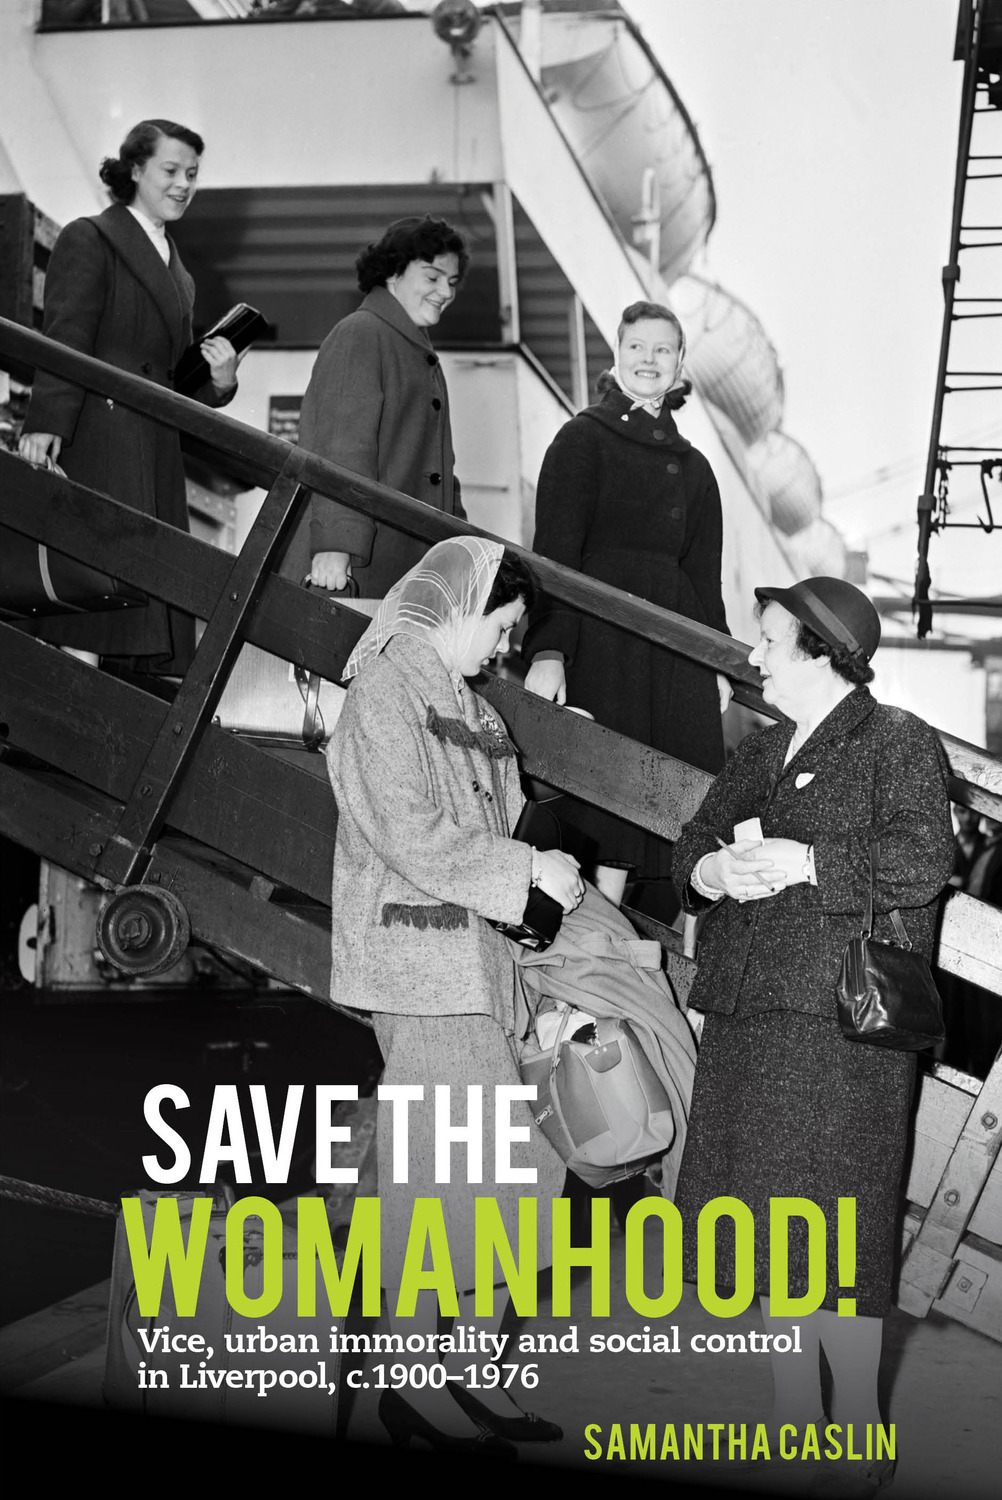 Save the Womanhood!